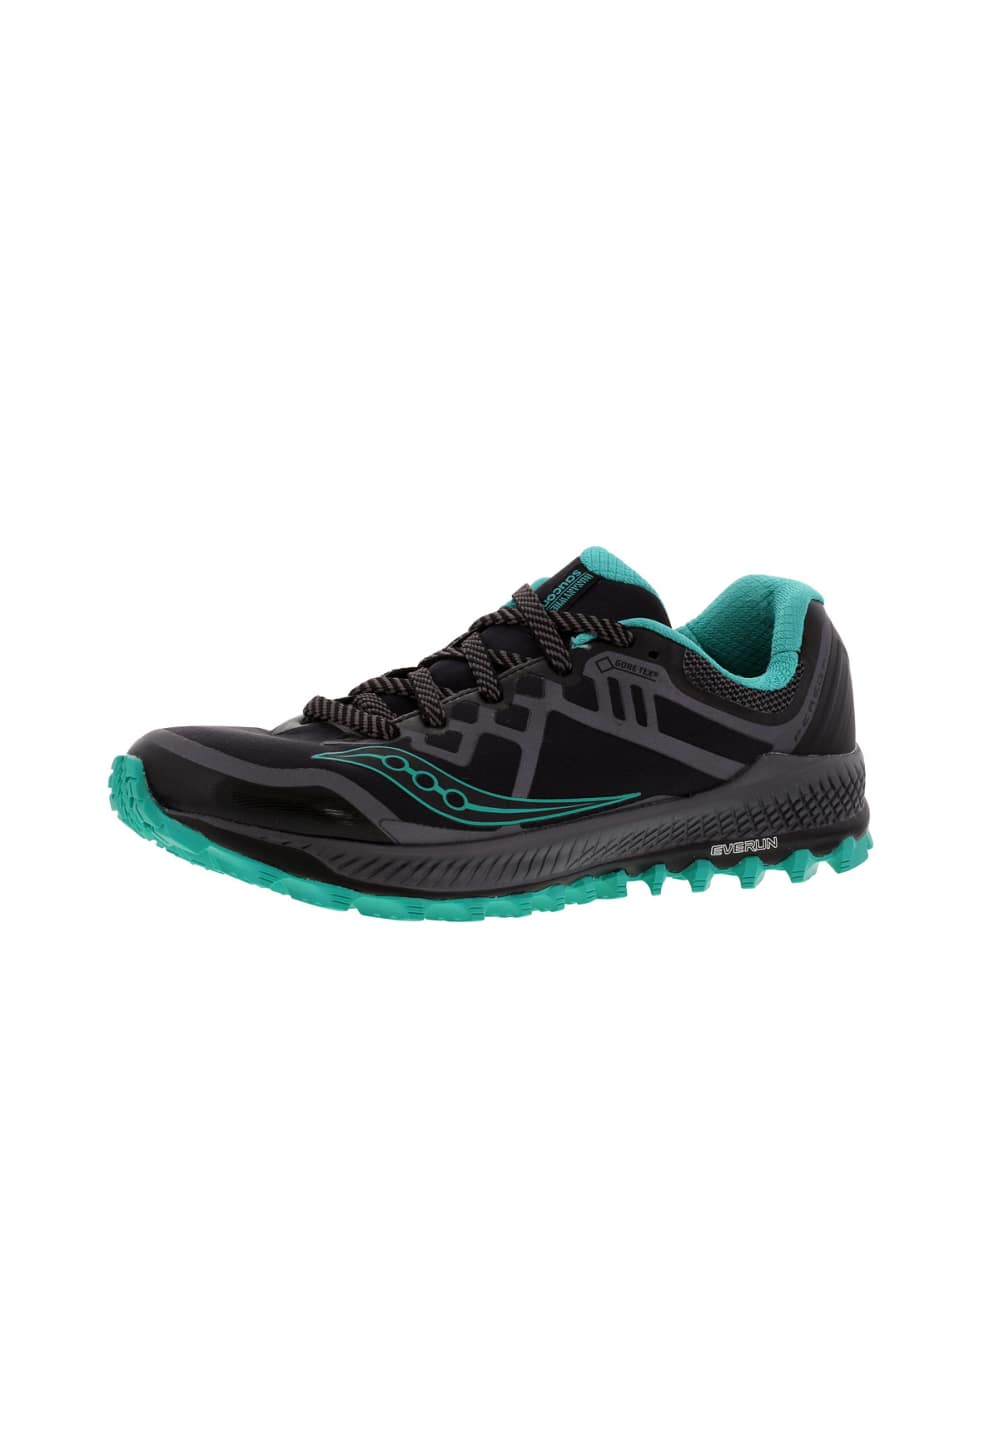 quality design 79ccb db1a6 Saucony Peregrine 8 GTX - Running shoes for Women - Black